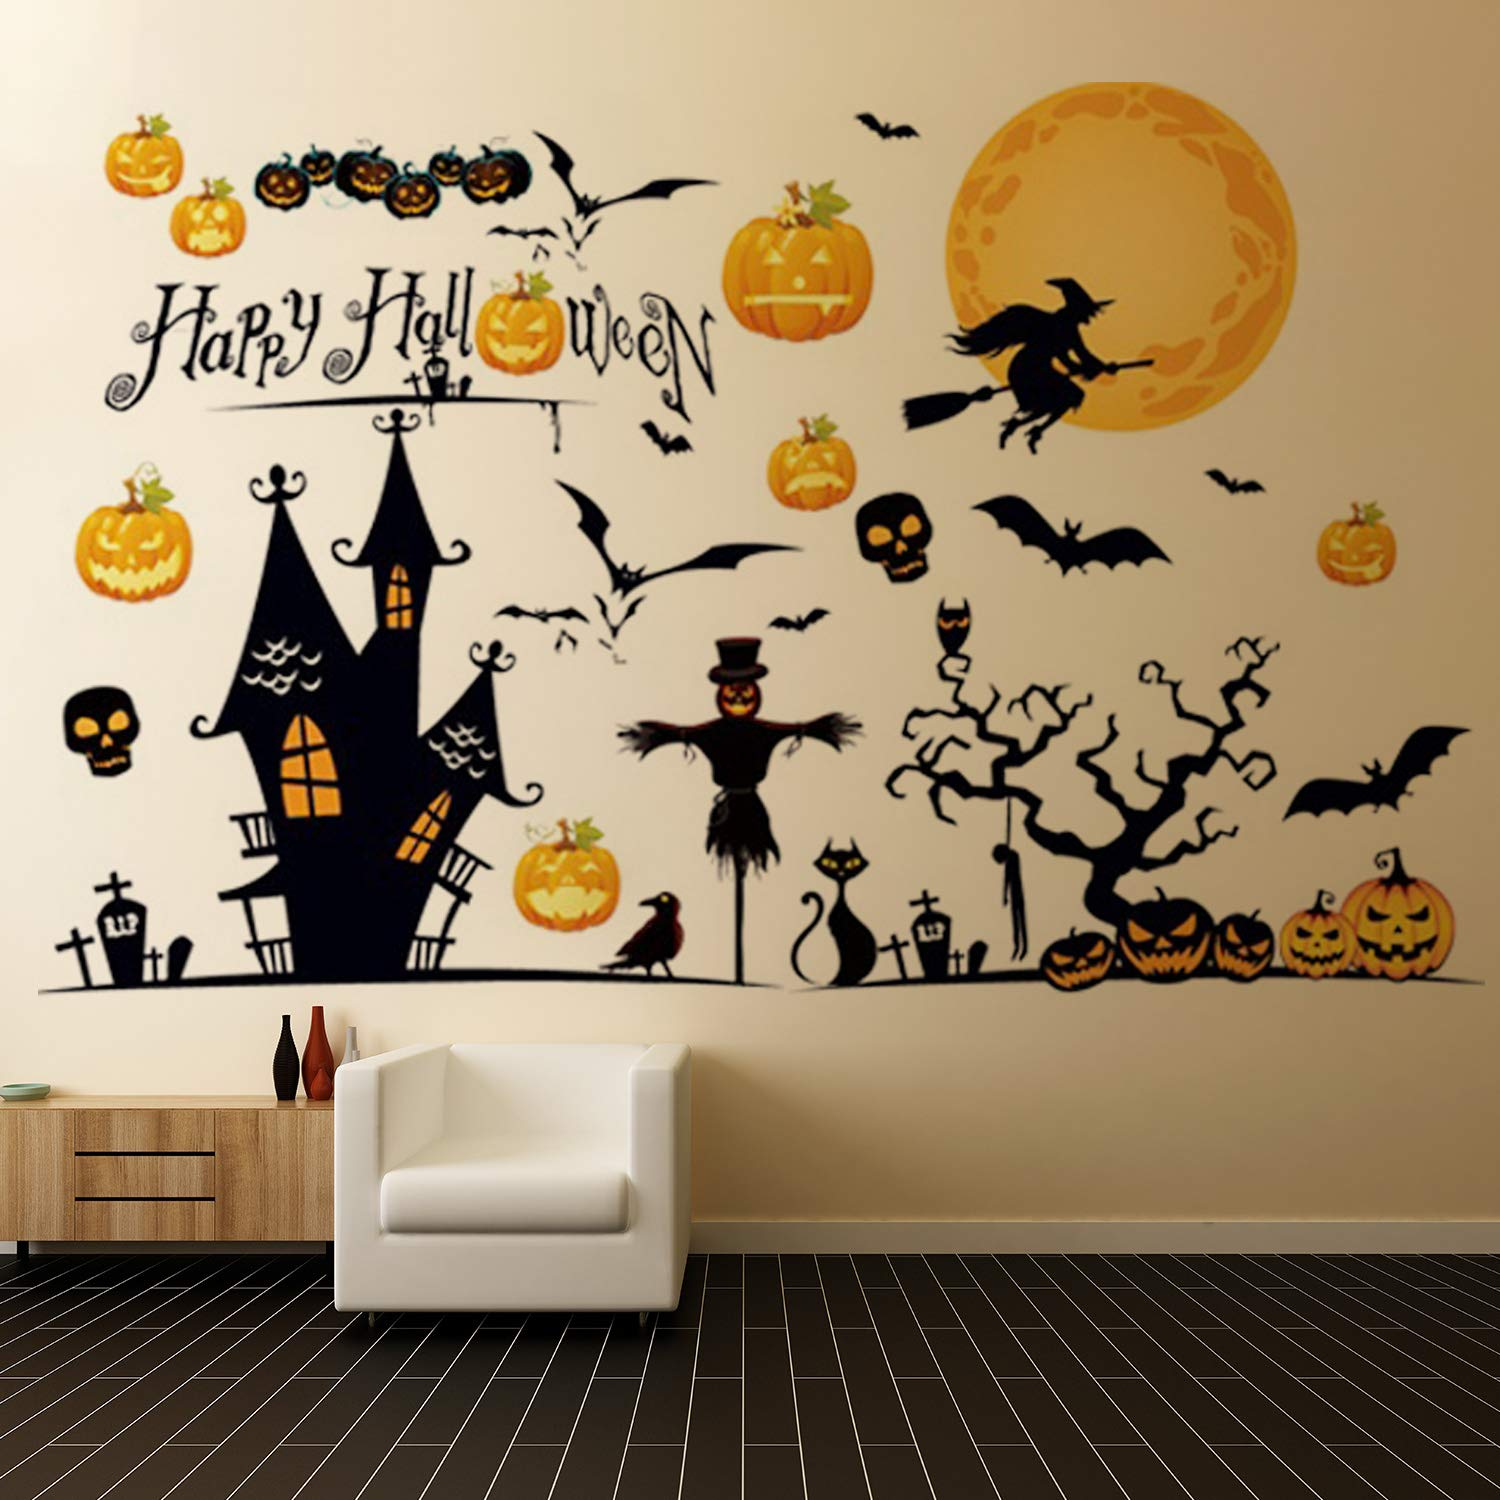 Amazon Com Halloween Wall Stickers Happy Halloween Decorations